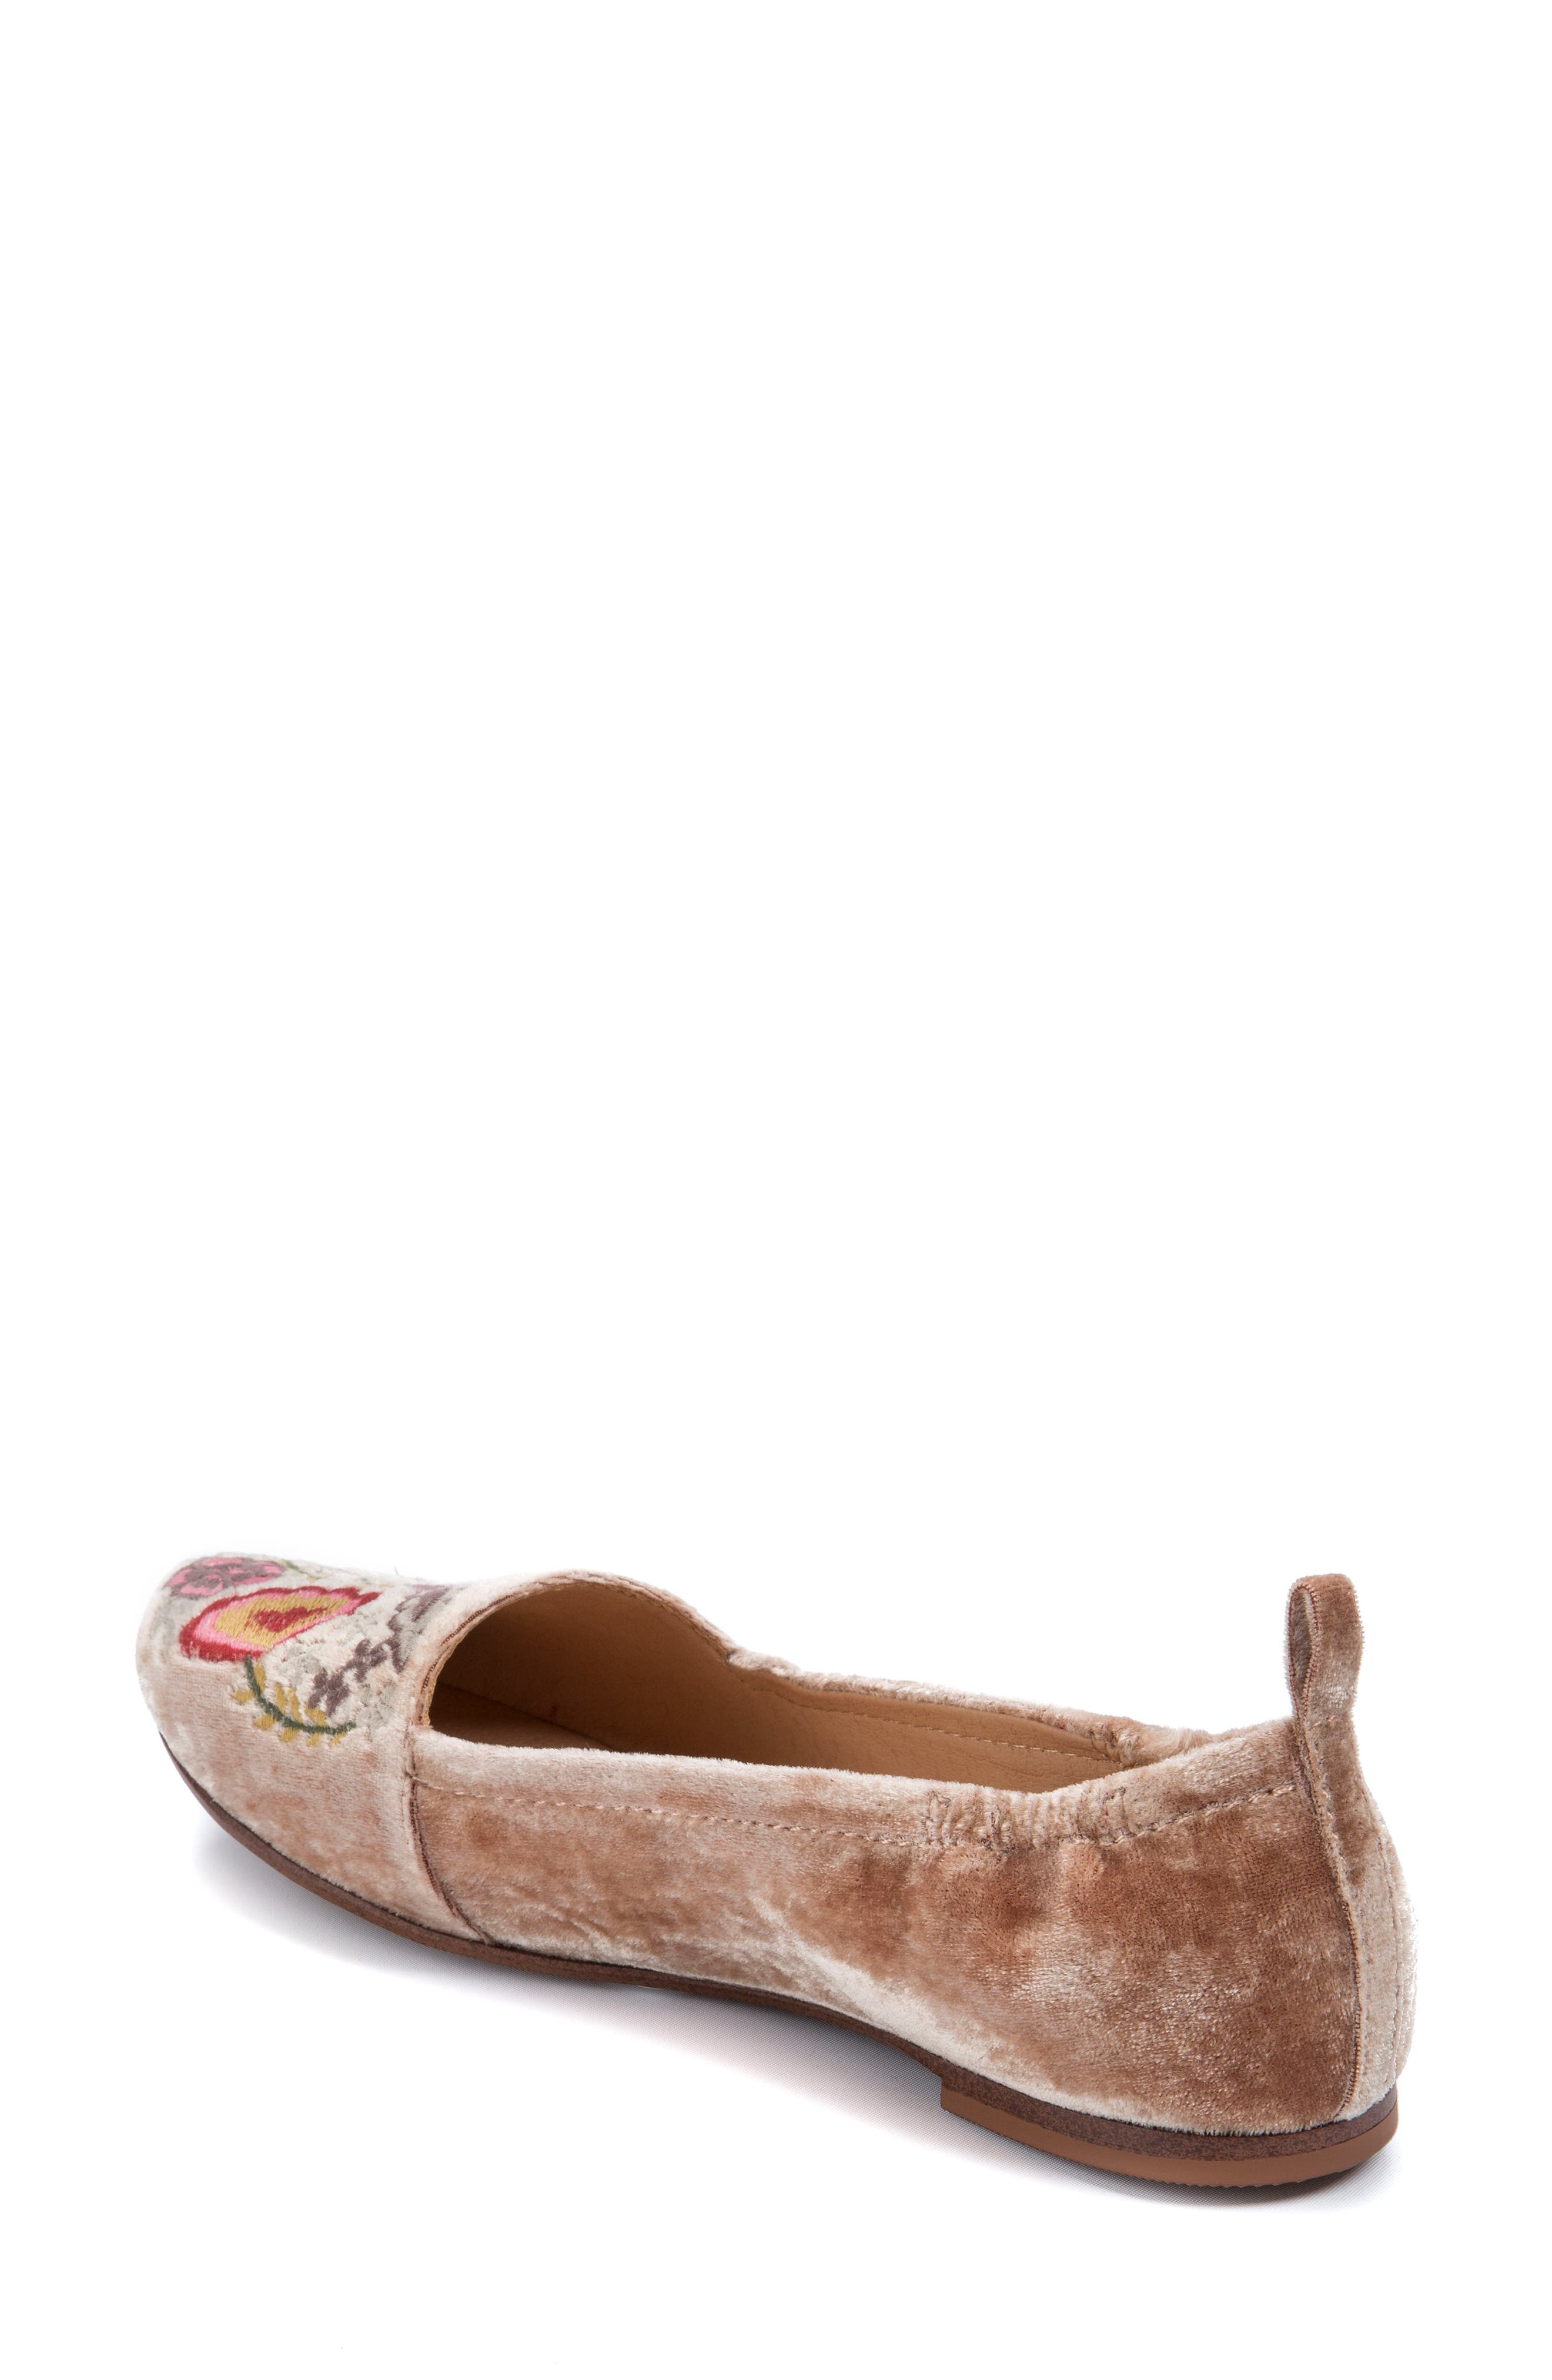 Gayla Floral Embroidered Flat,                             Alternate thumbnail 6, color,